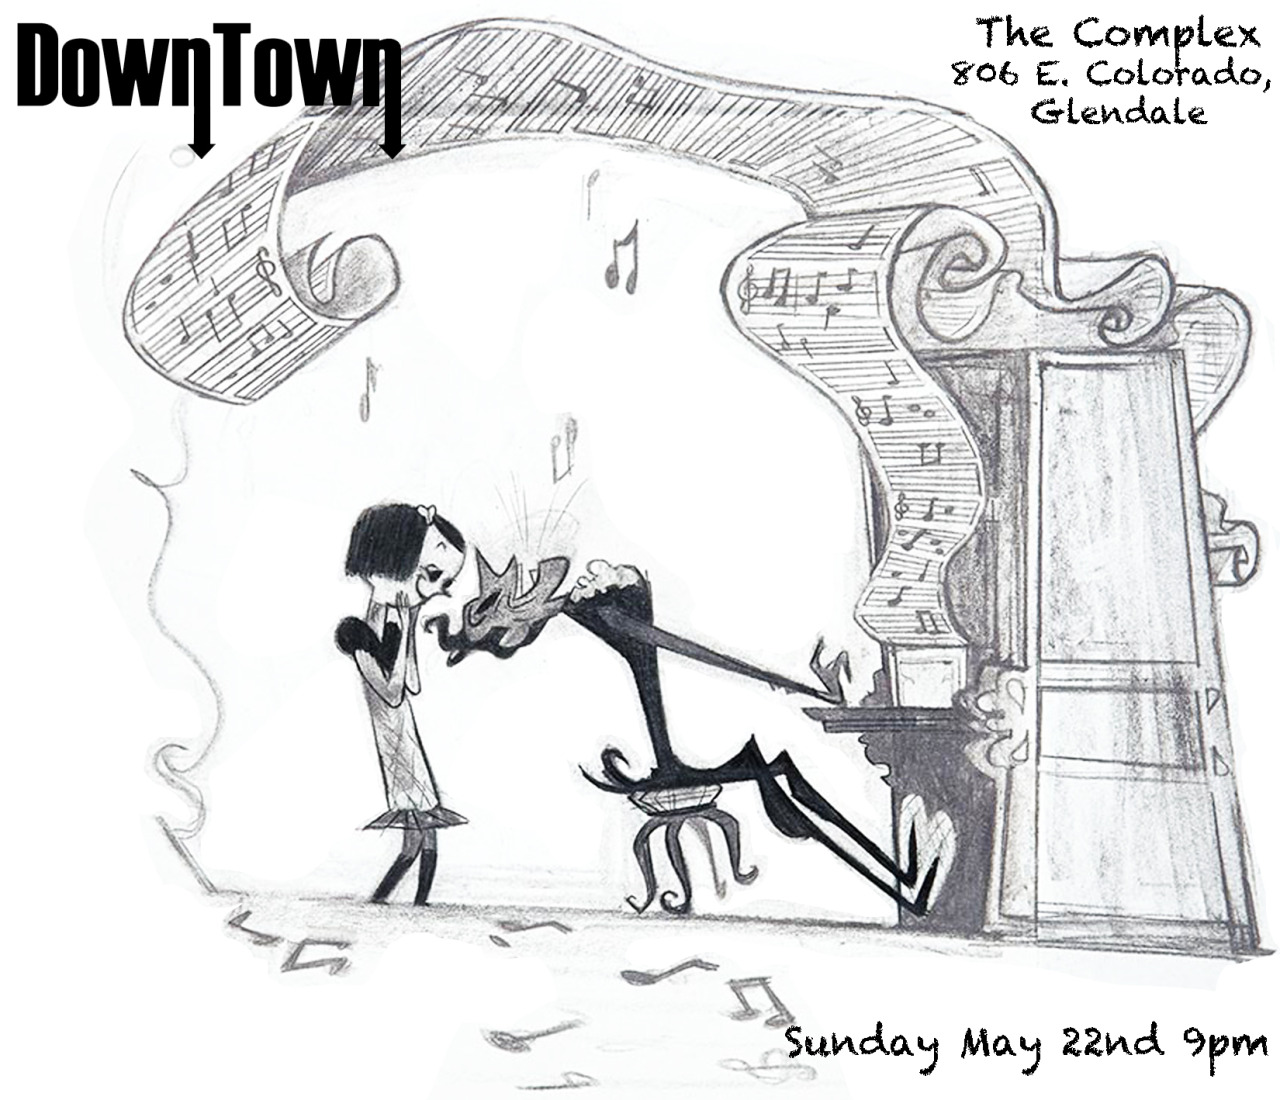 VENUE CHANGE:  The Complex in Glendale are experienceing some venue difficulties, so we have moved the show to good ol'  Molly Malones ! We'll see you and that giant painted lady on the wall on Sunday!   Downtown is taking you to church! Or, at the very least, playing on a Sunday night! Come join us and dance away your weekend! Show starts at 9 PM! We'll see you there!